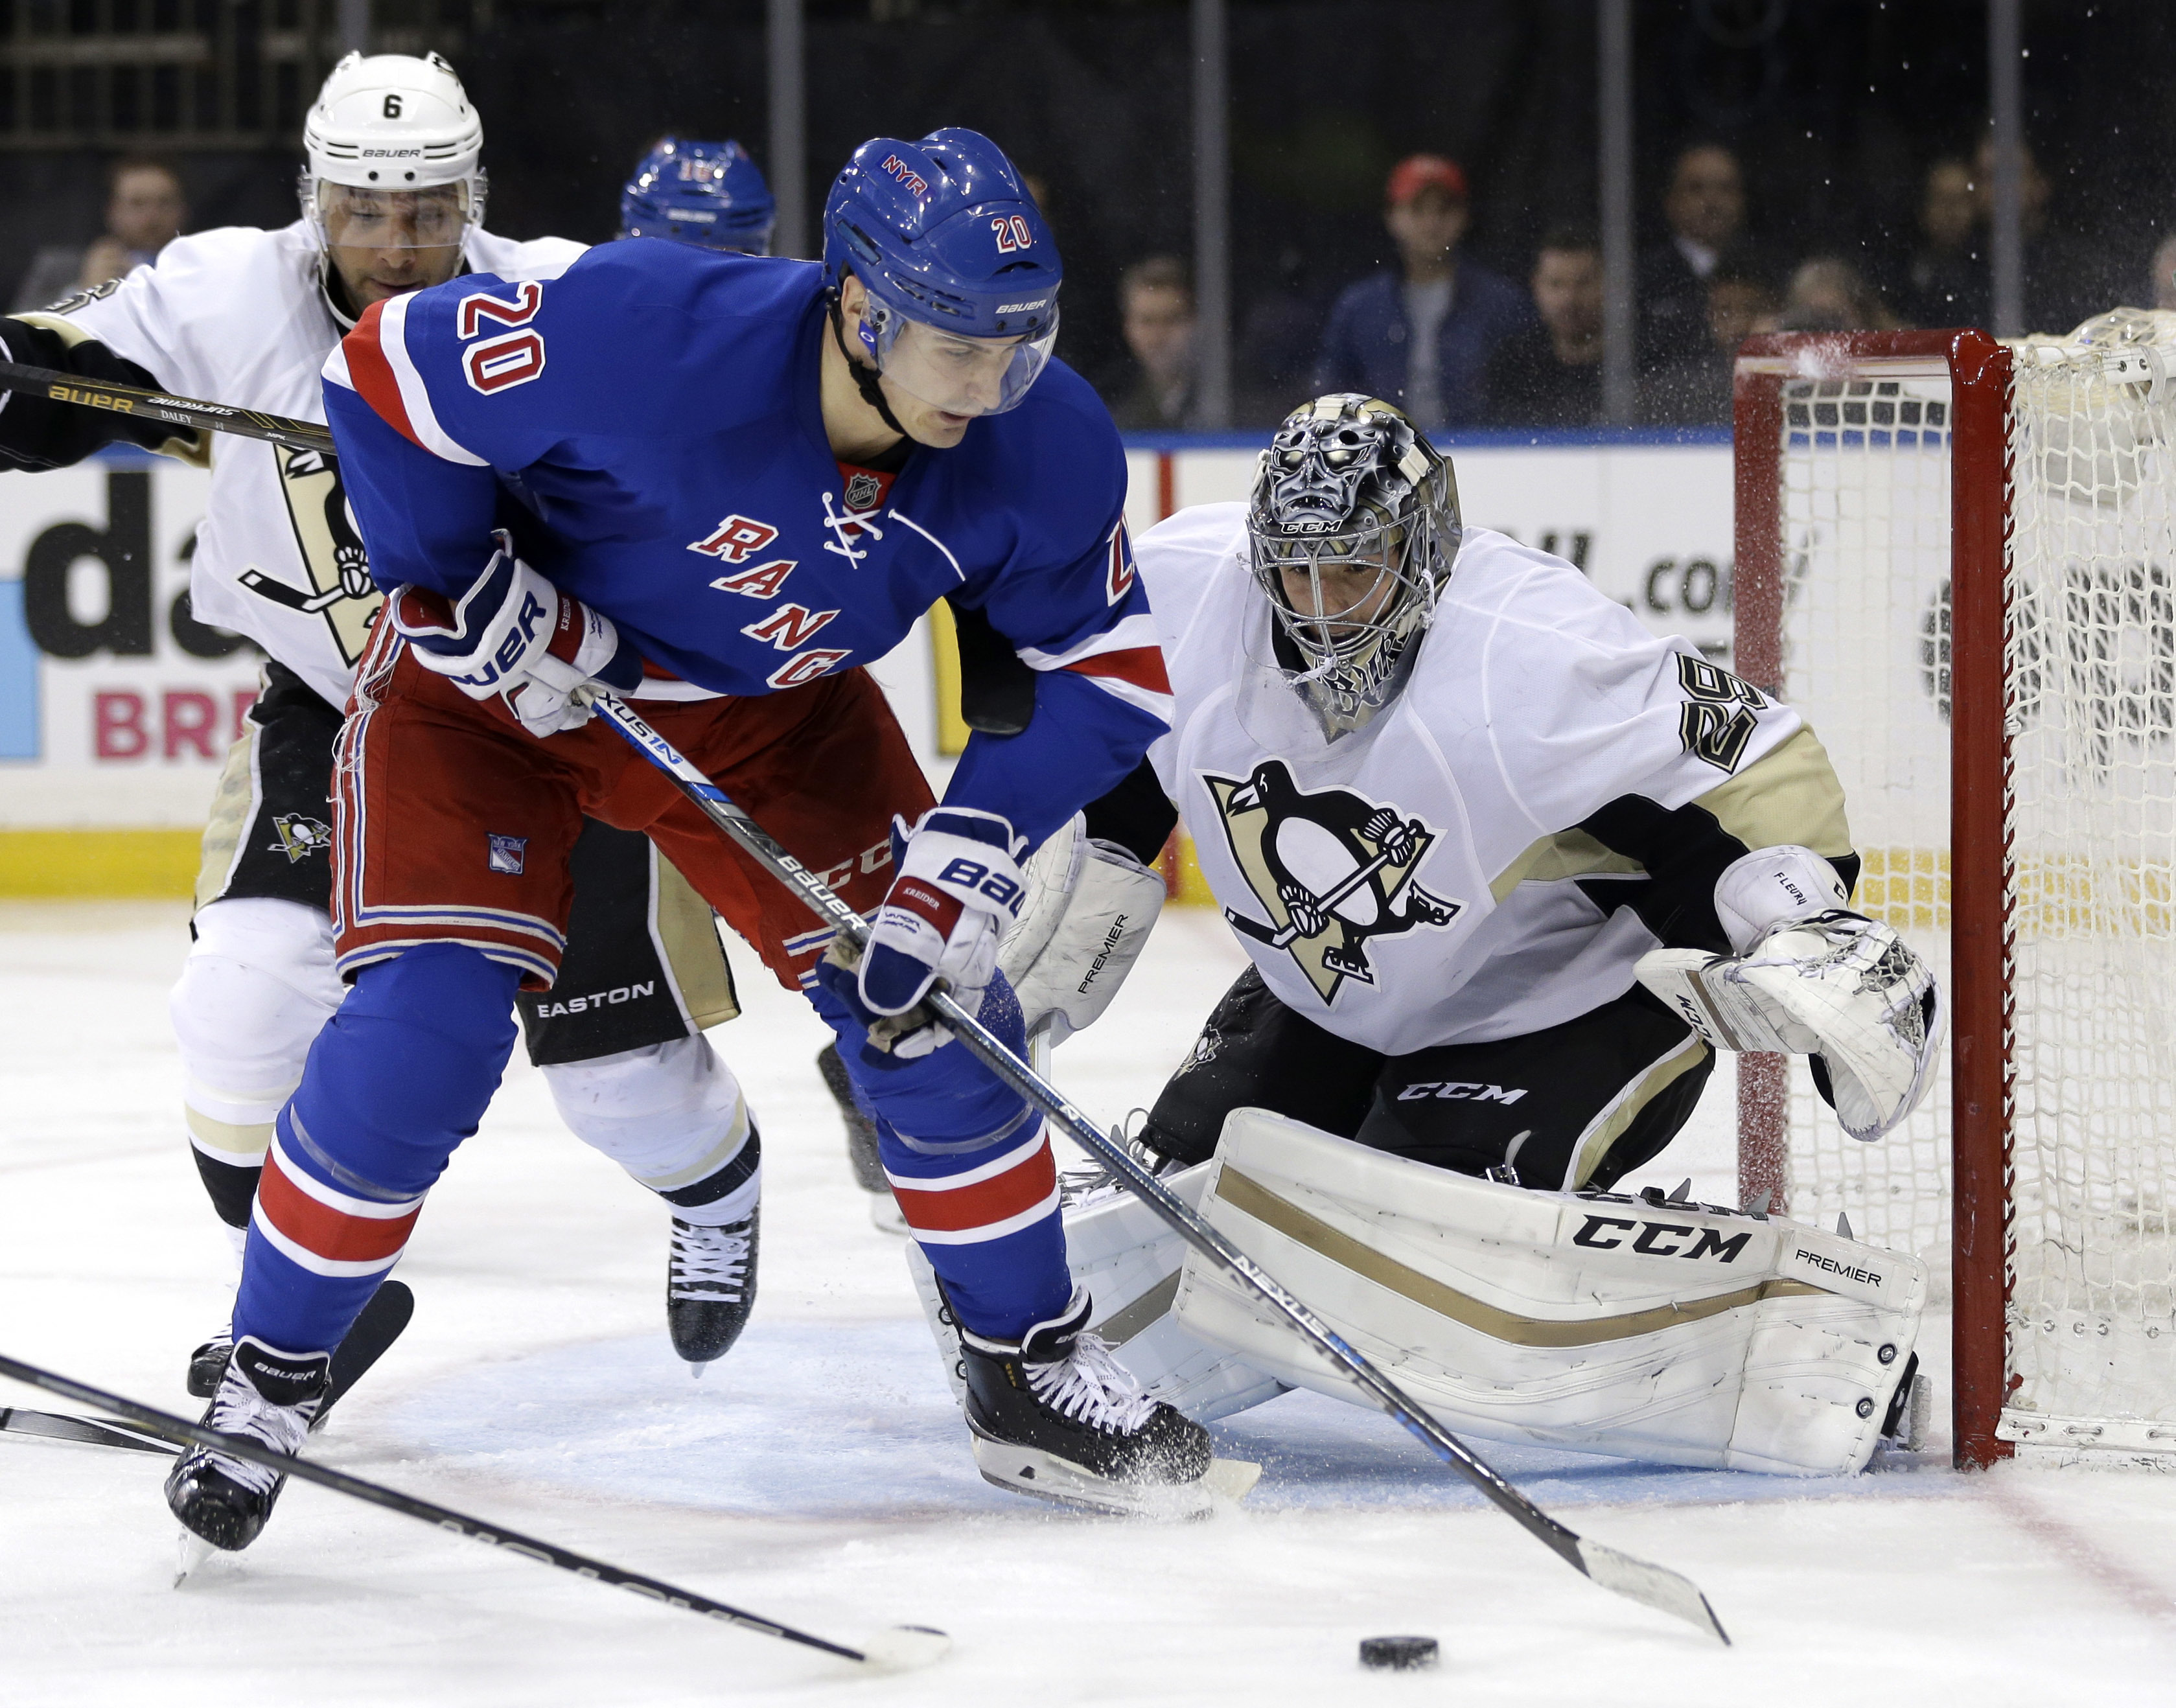 New York Rangers' Chris Kreider, left, moves the puck in front of Pittsburgh Penguins goalie Marc-Andre Fleury during the second period of the NHL hockey game, Sunday, March 27, 2016, in New York. (AP Photo/Seth Wenig)